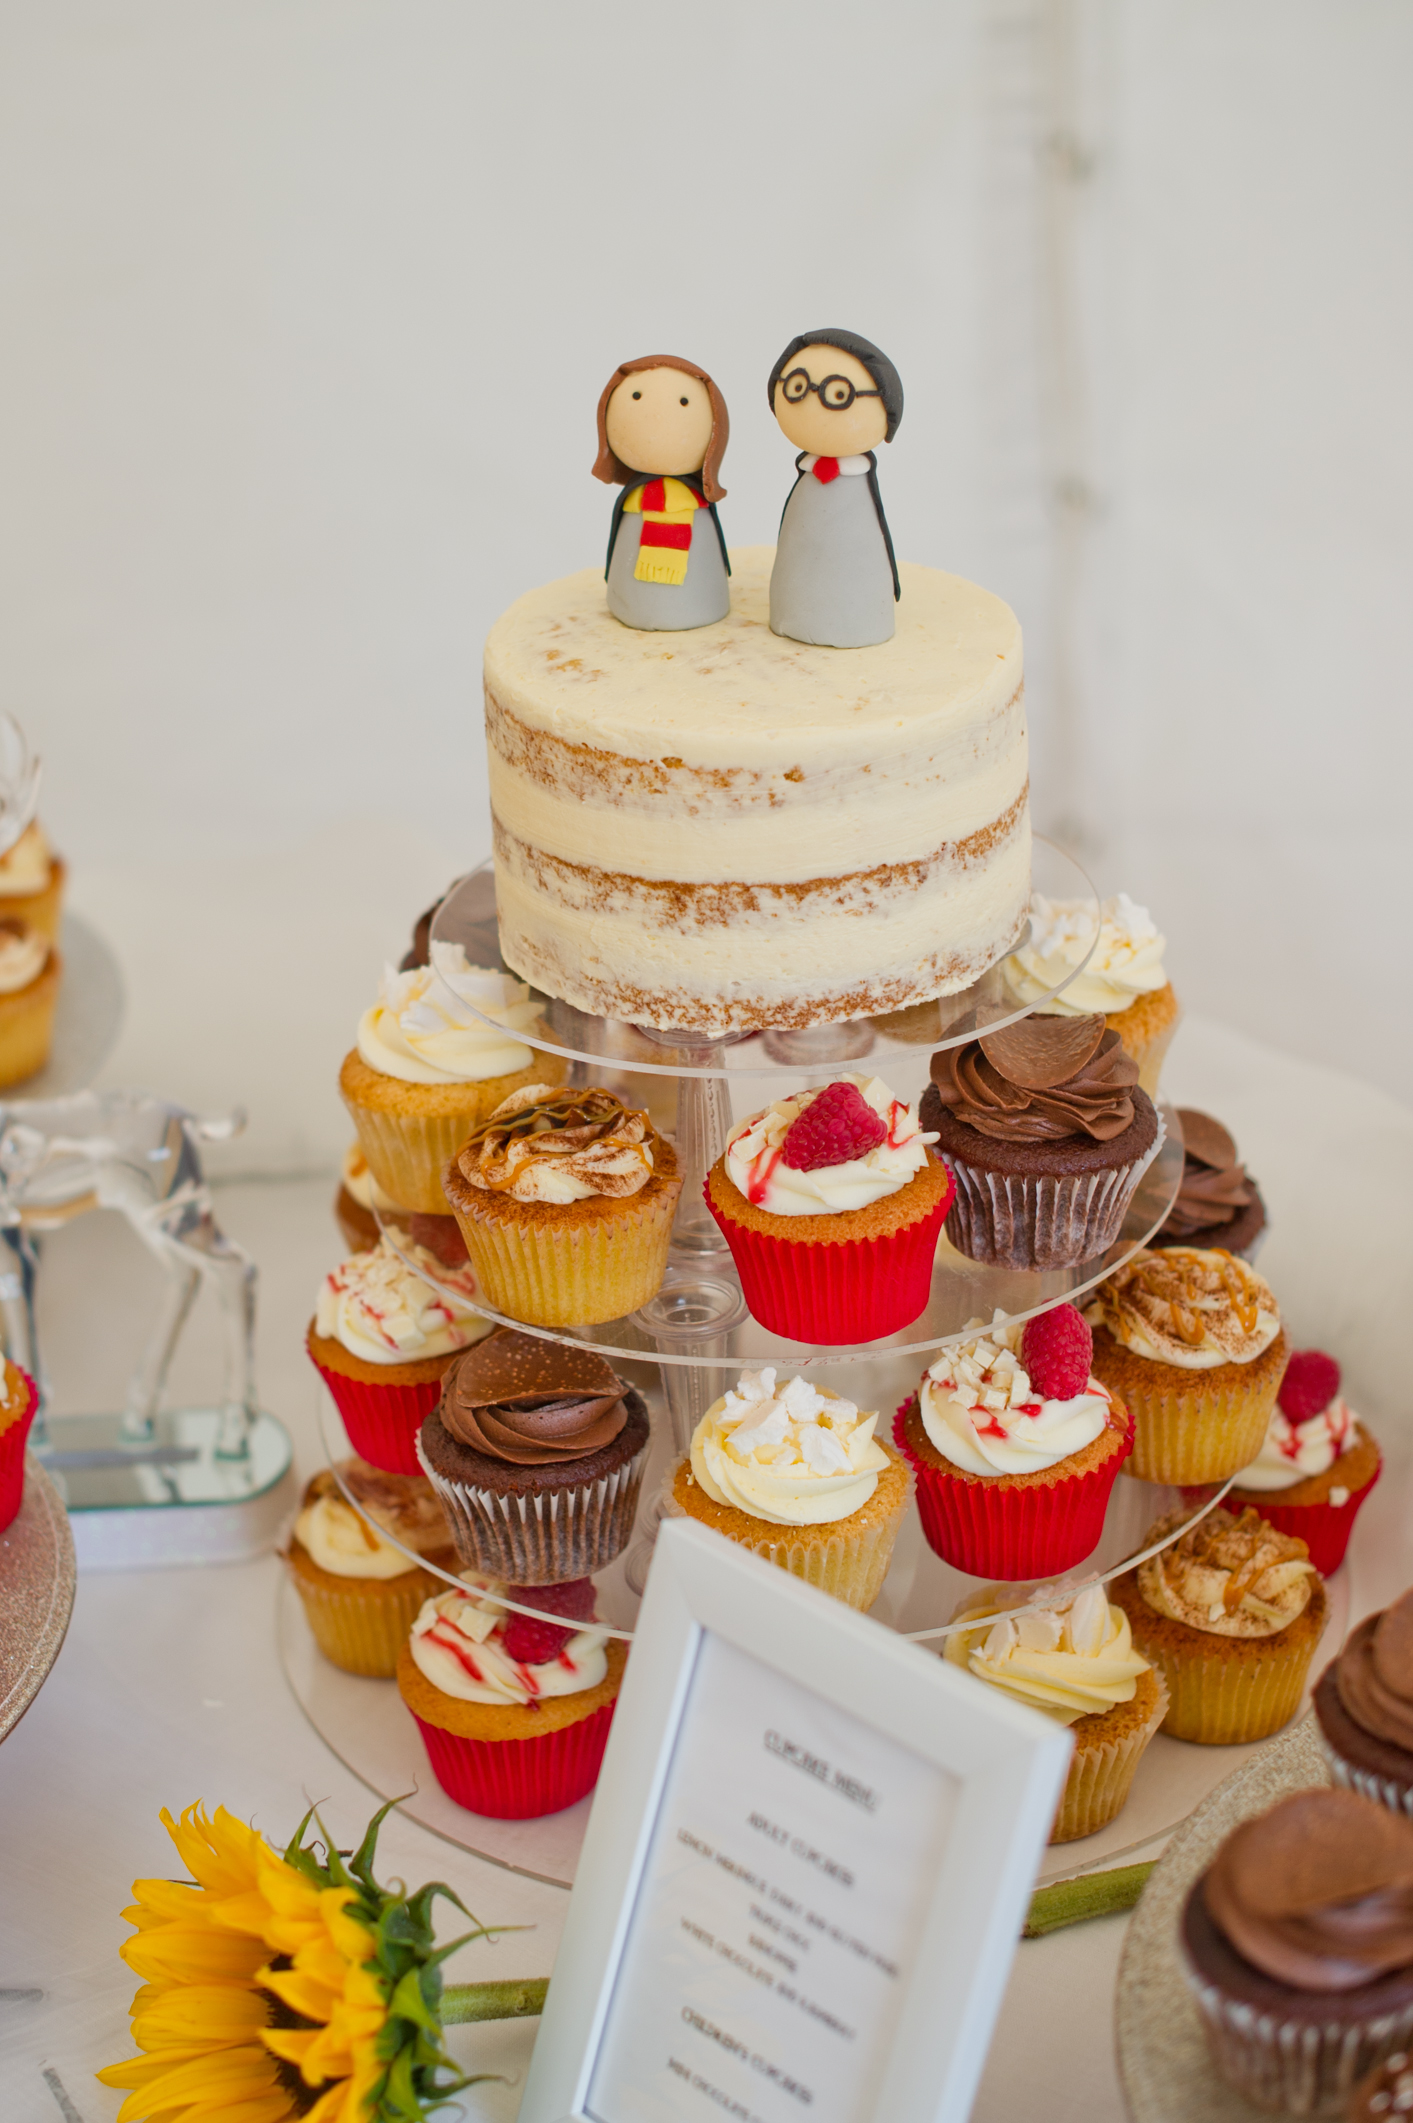 Harry Potter wedding cake. Loads of attention to detail in Katy and Duncan's wedding.